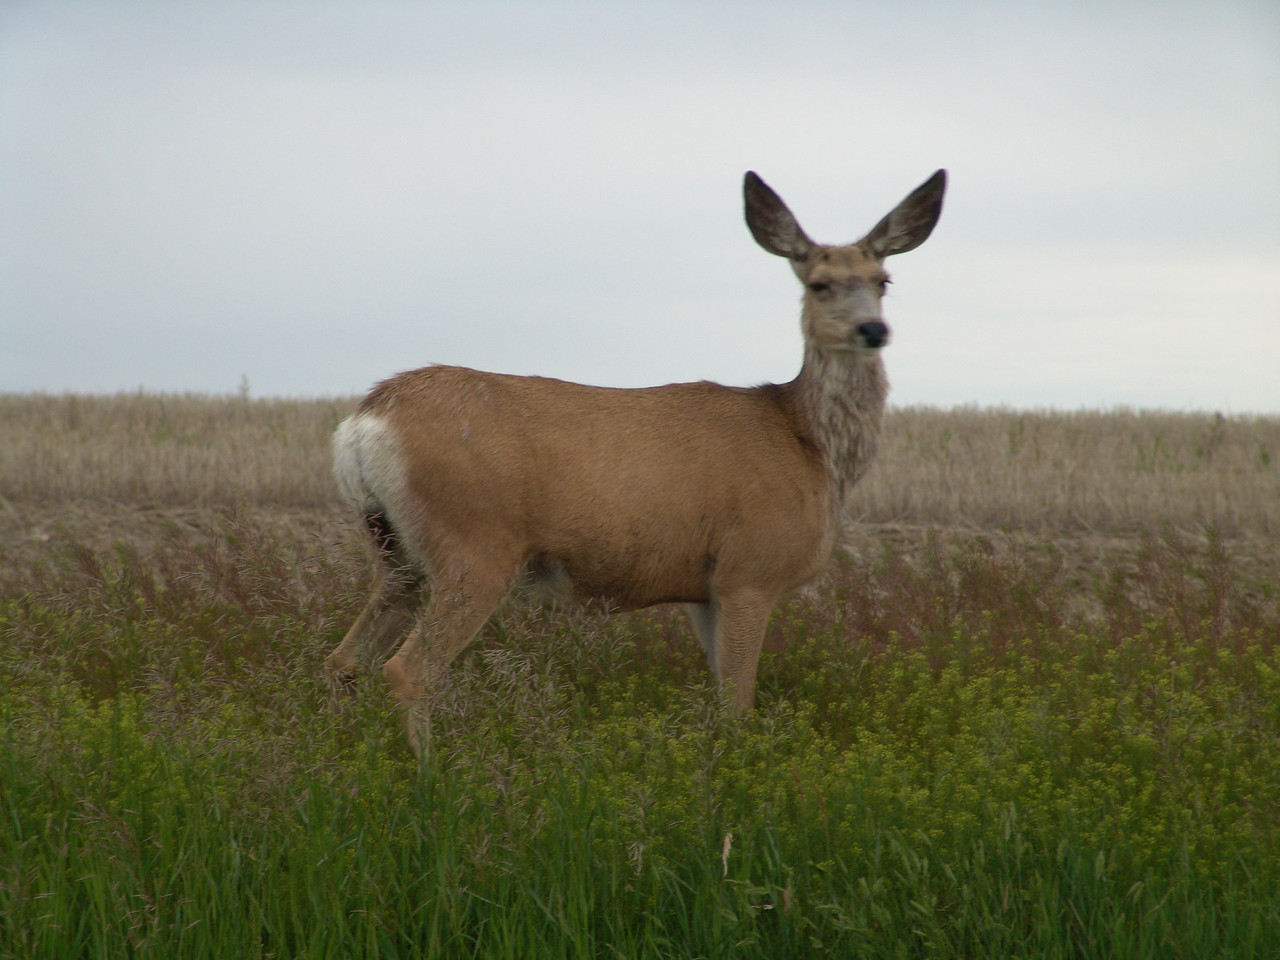 Approaching Maple Creek on highway 21 south I found this guy who was gracious enough to pose for me.